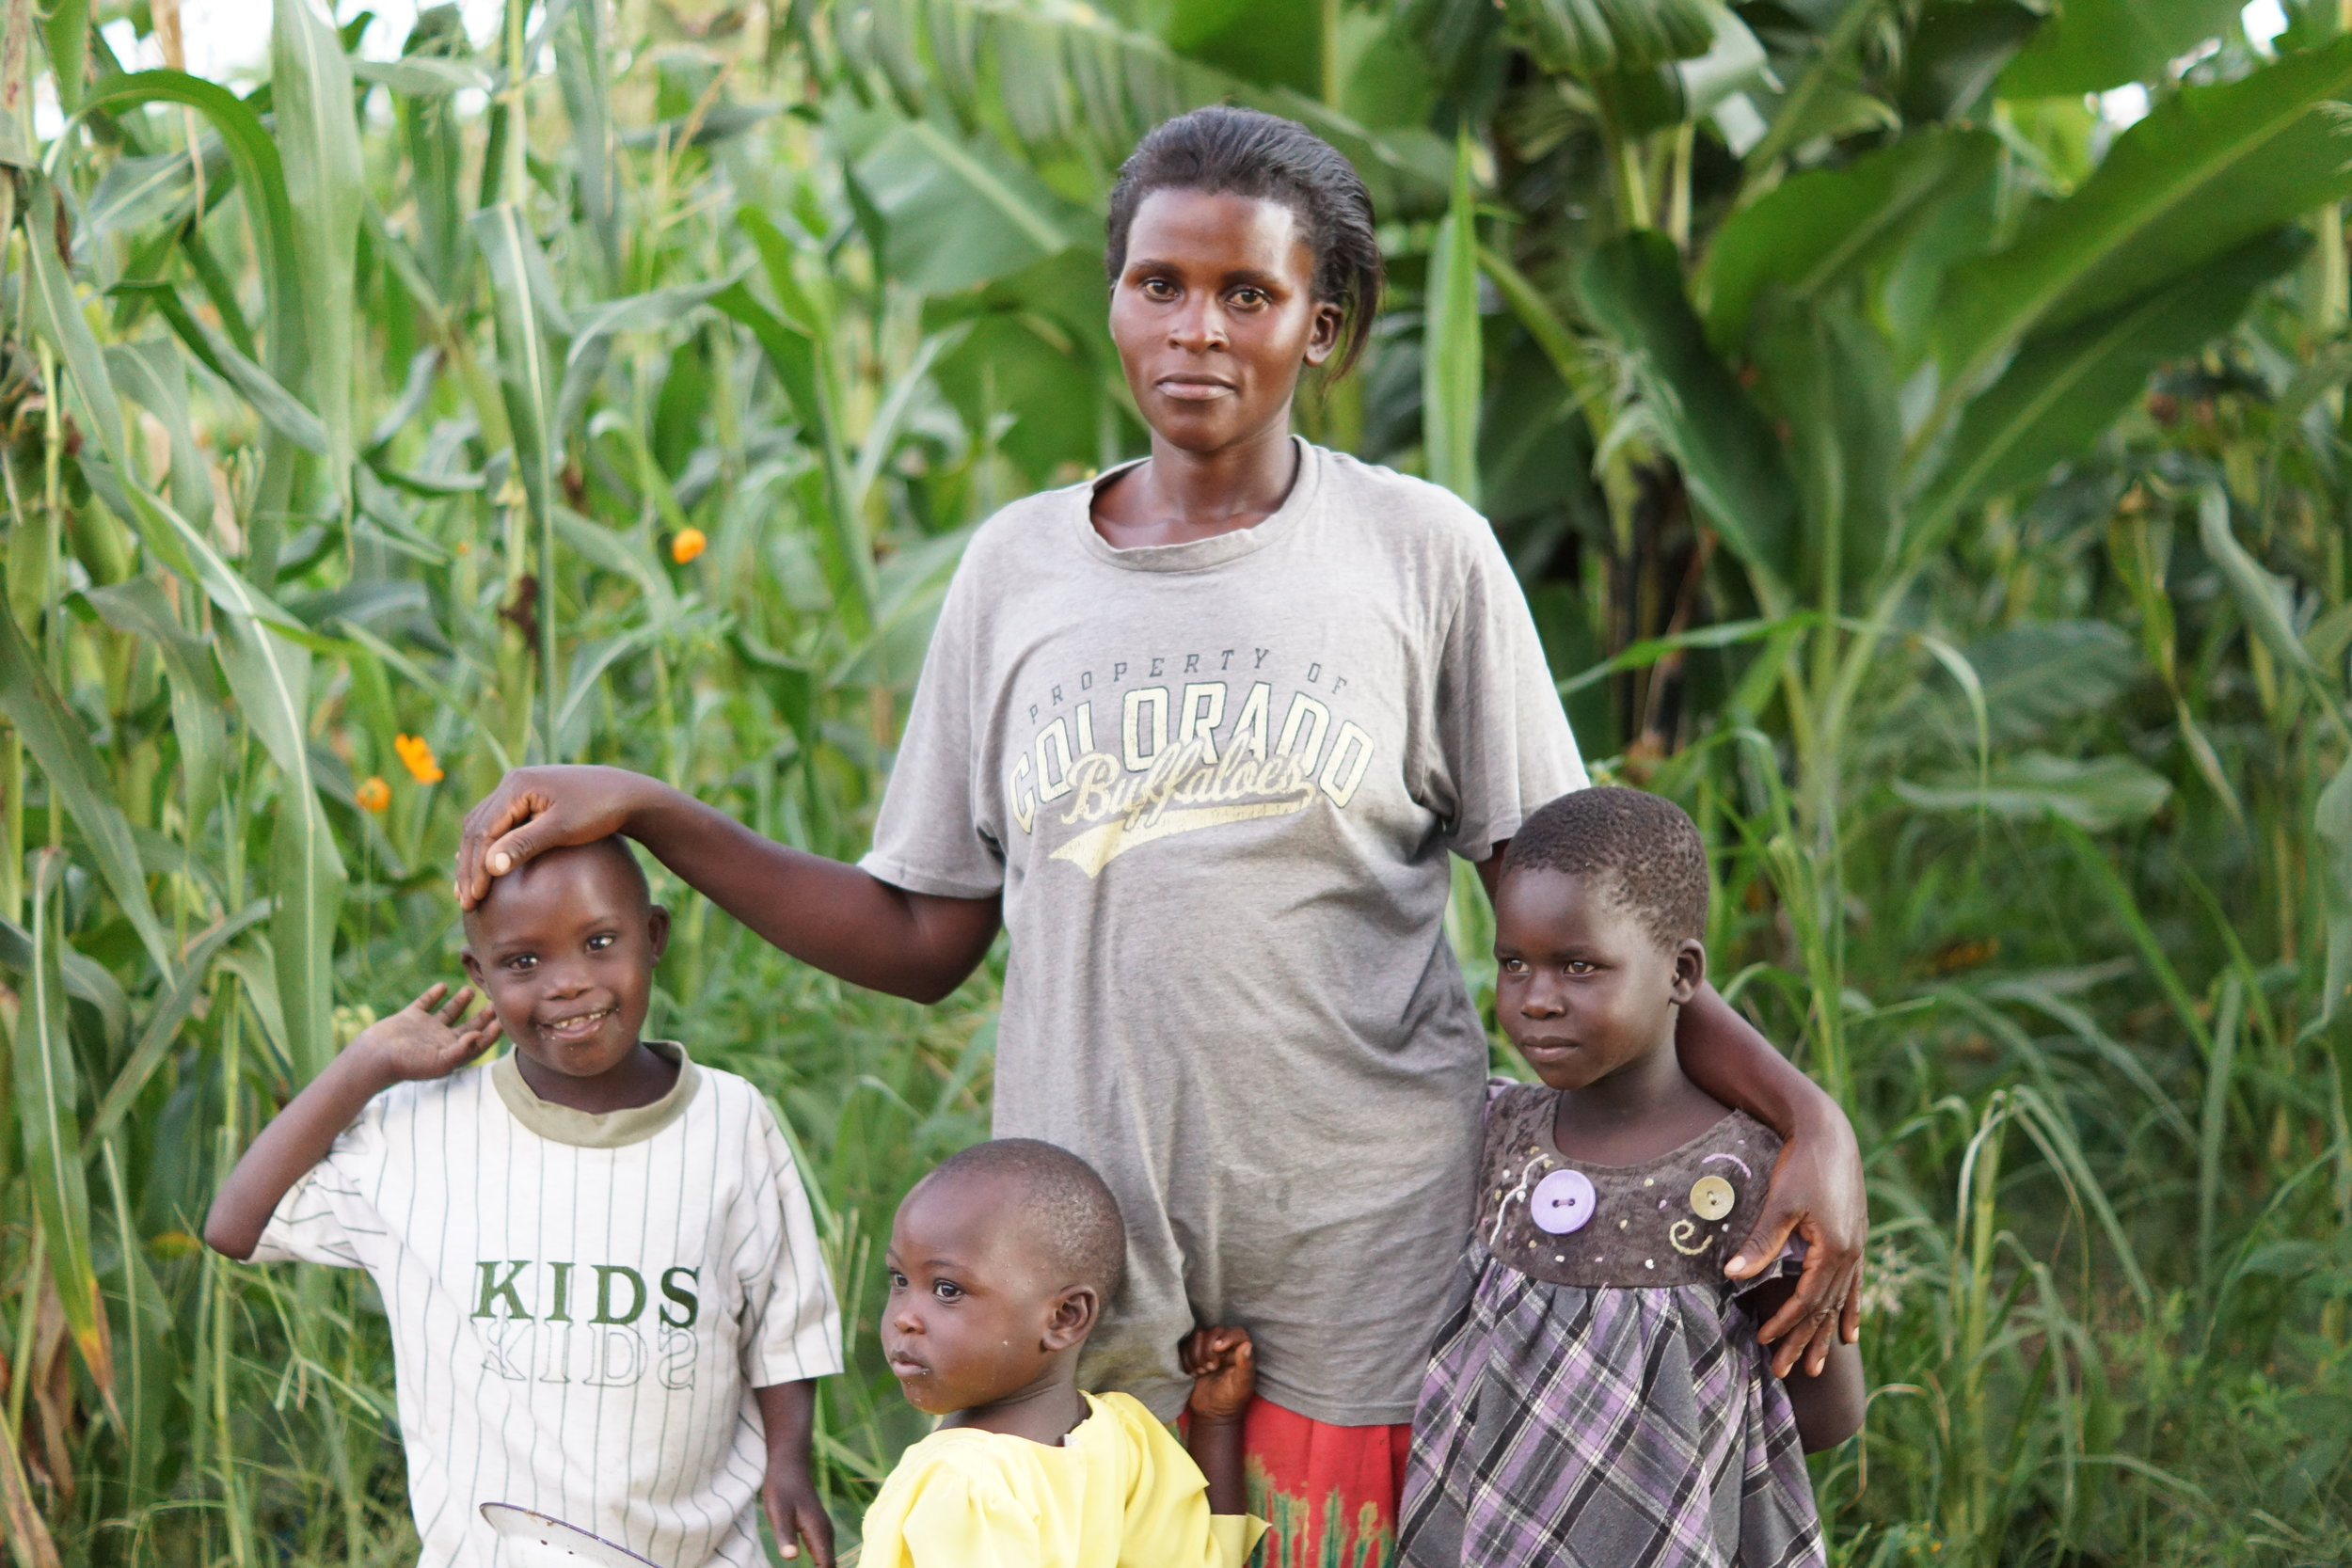 Parents in Namasale have the same dreams for their children as their parents had for you. When you join The Circle, you're helping to end generational poverty in partnership with families in rural Uganda.